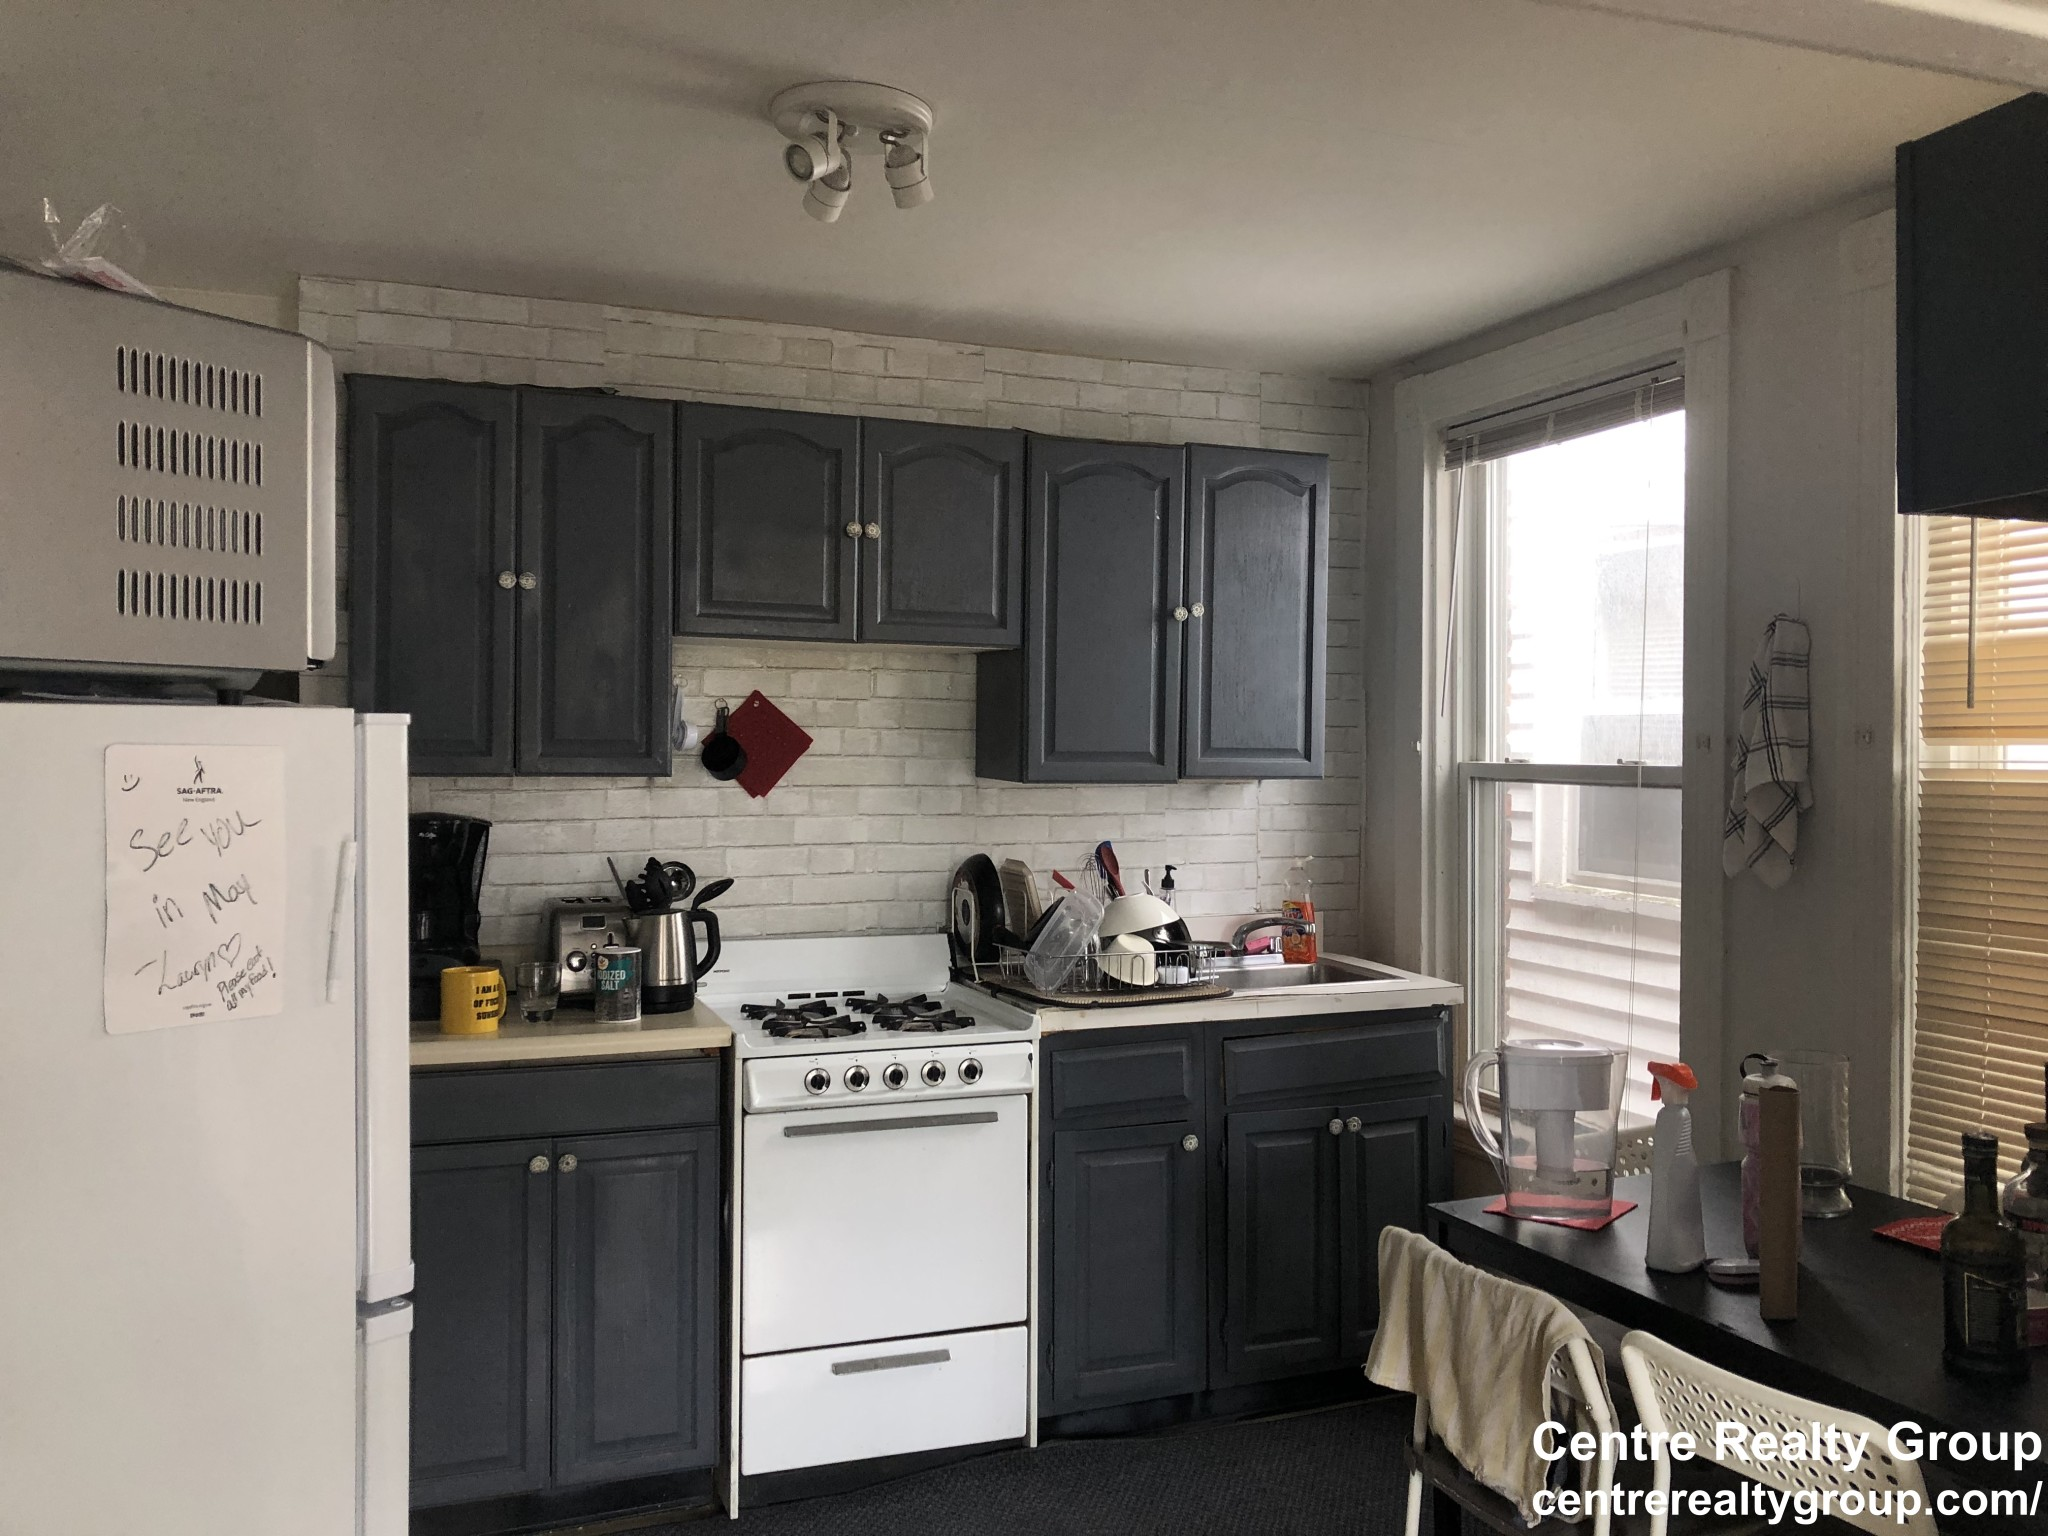 Pictures of  property for rent on Parker Hill Ave., Boston, MA 02120